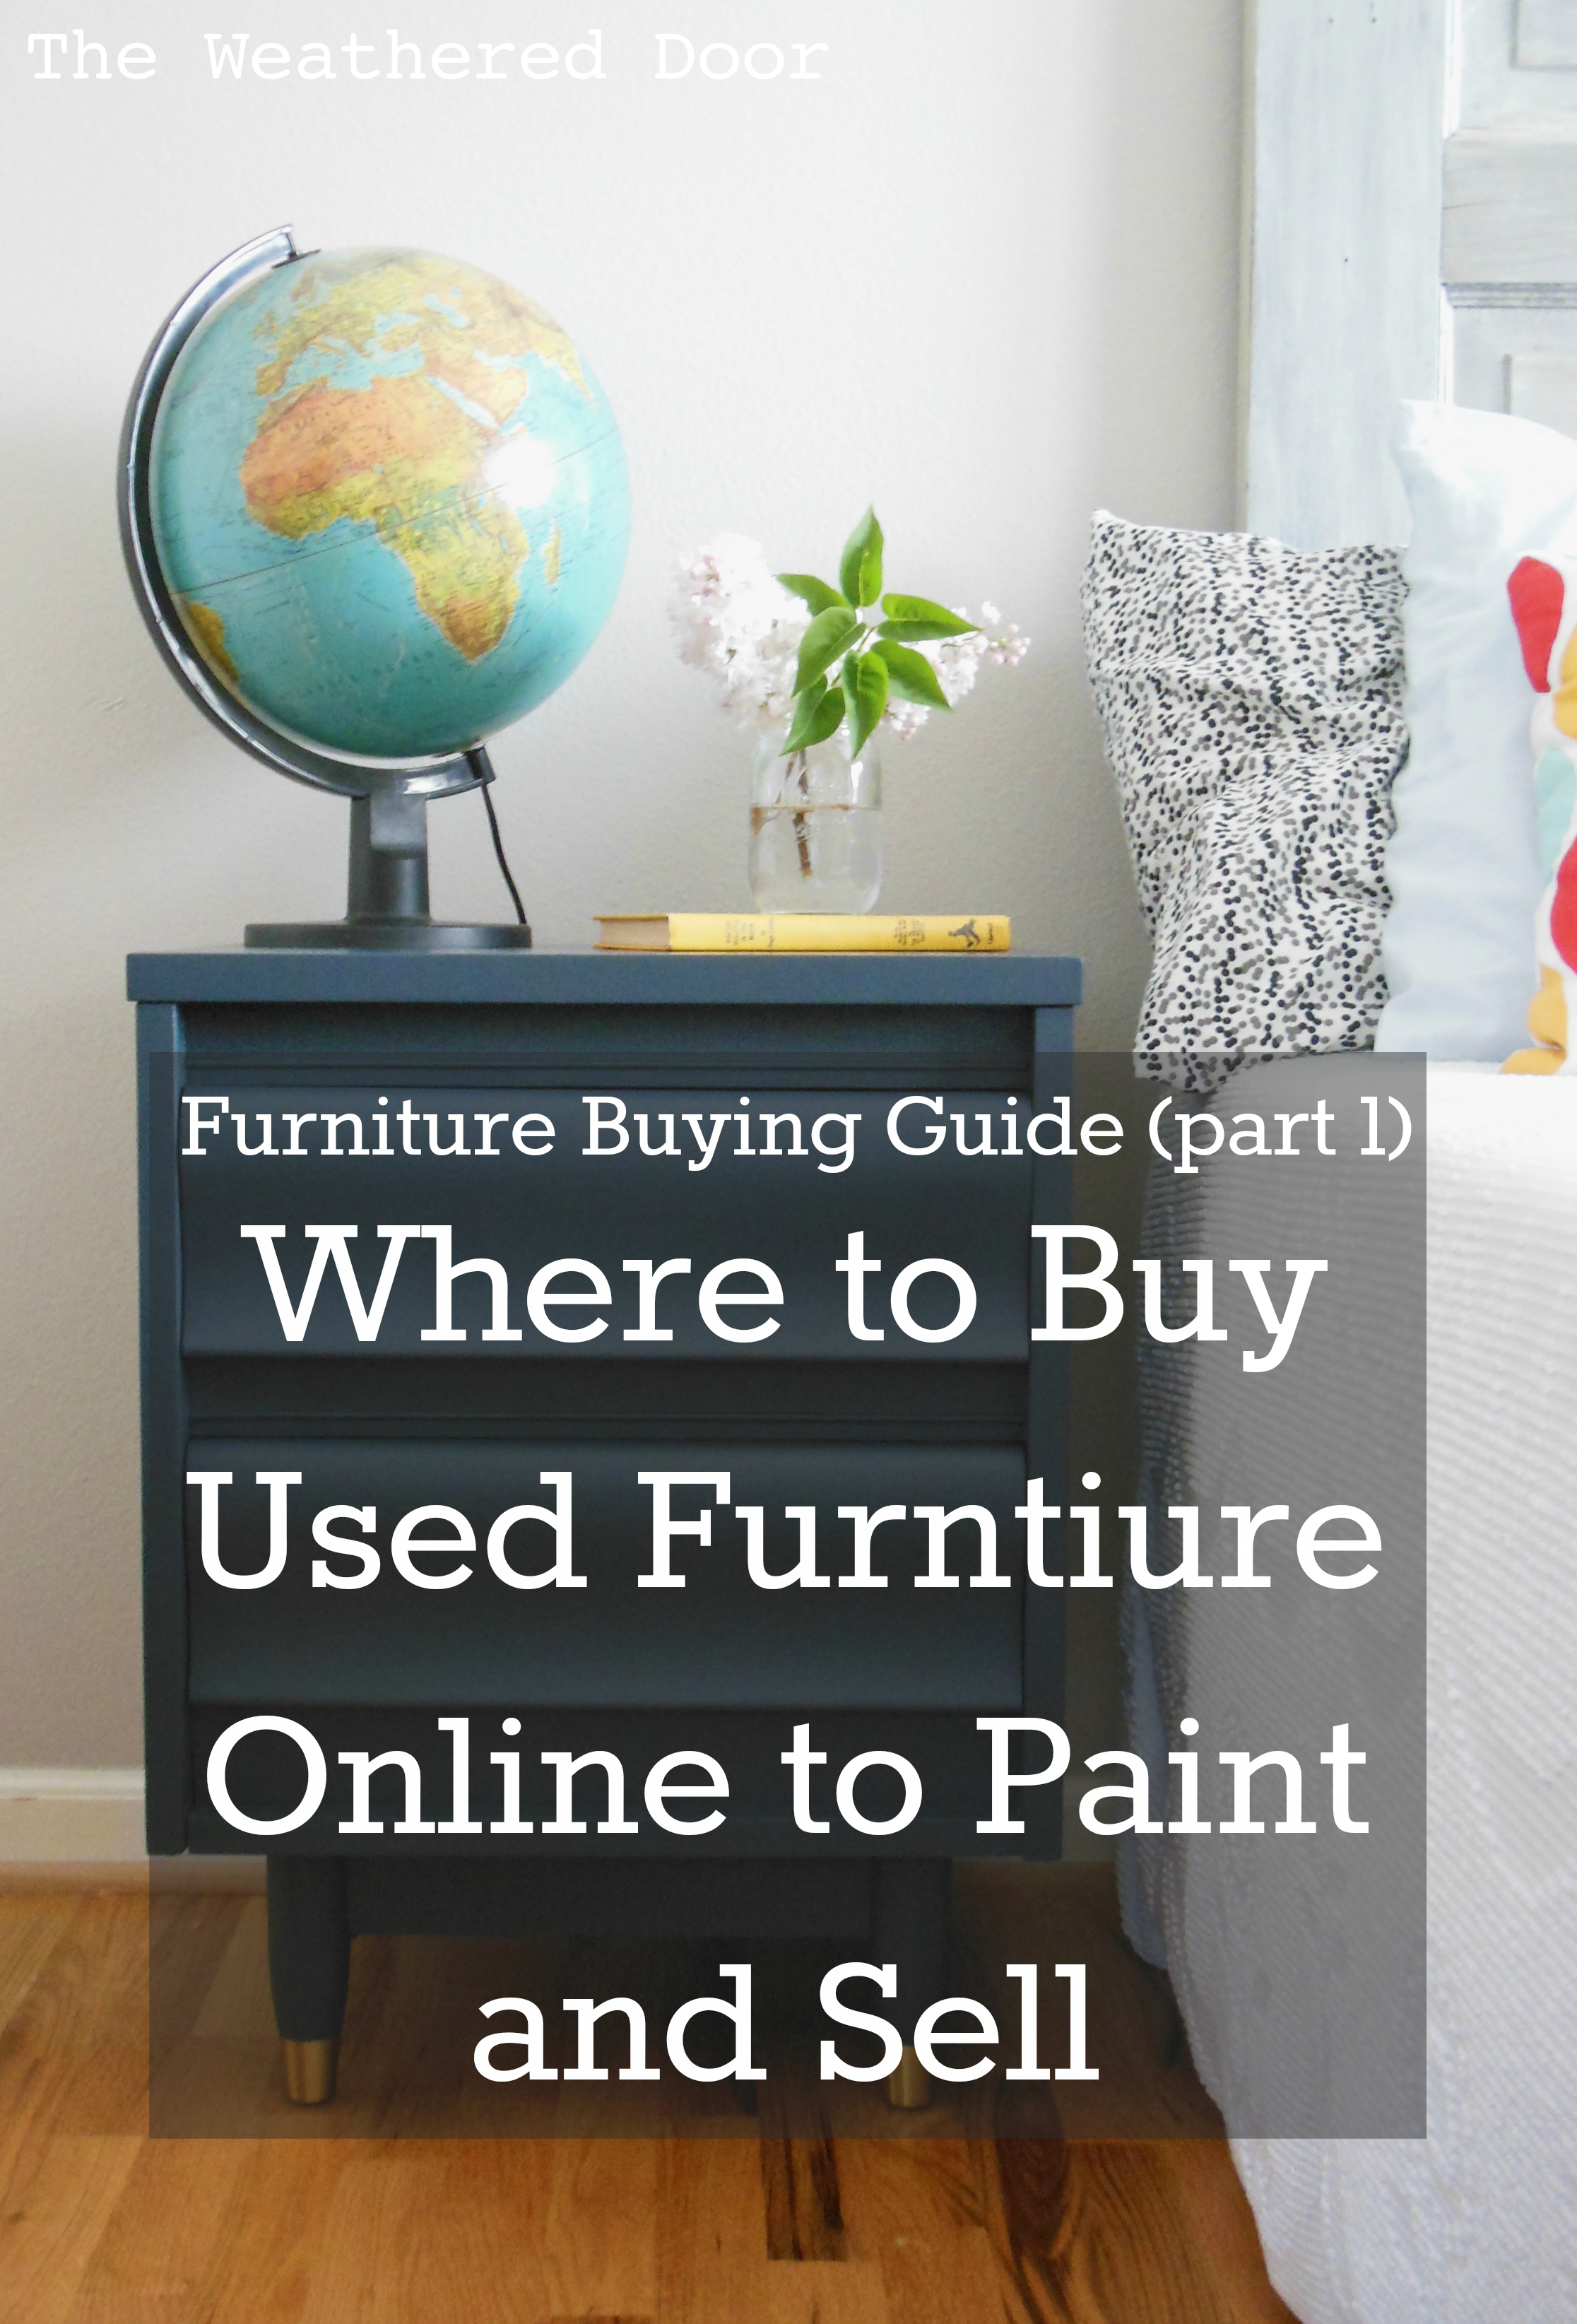 Etonnant Furniture Buying Guide: Where To Look For And Buy Used Furniture Pieces  Online To Paint And Sell (Part 1)   The Weathered Door